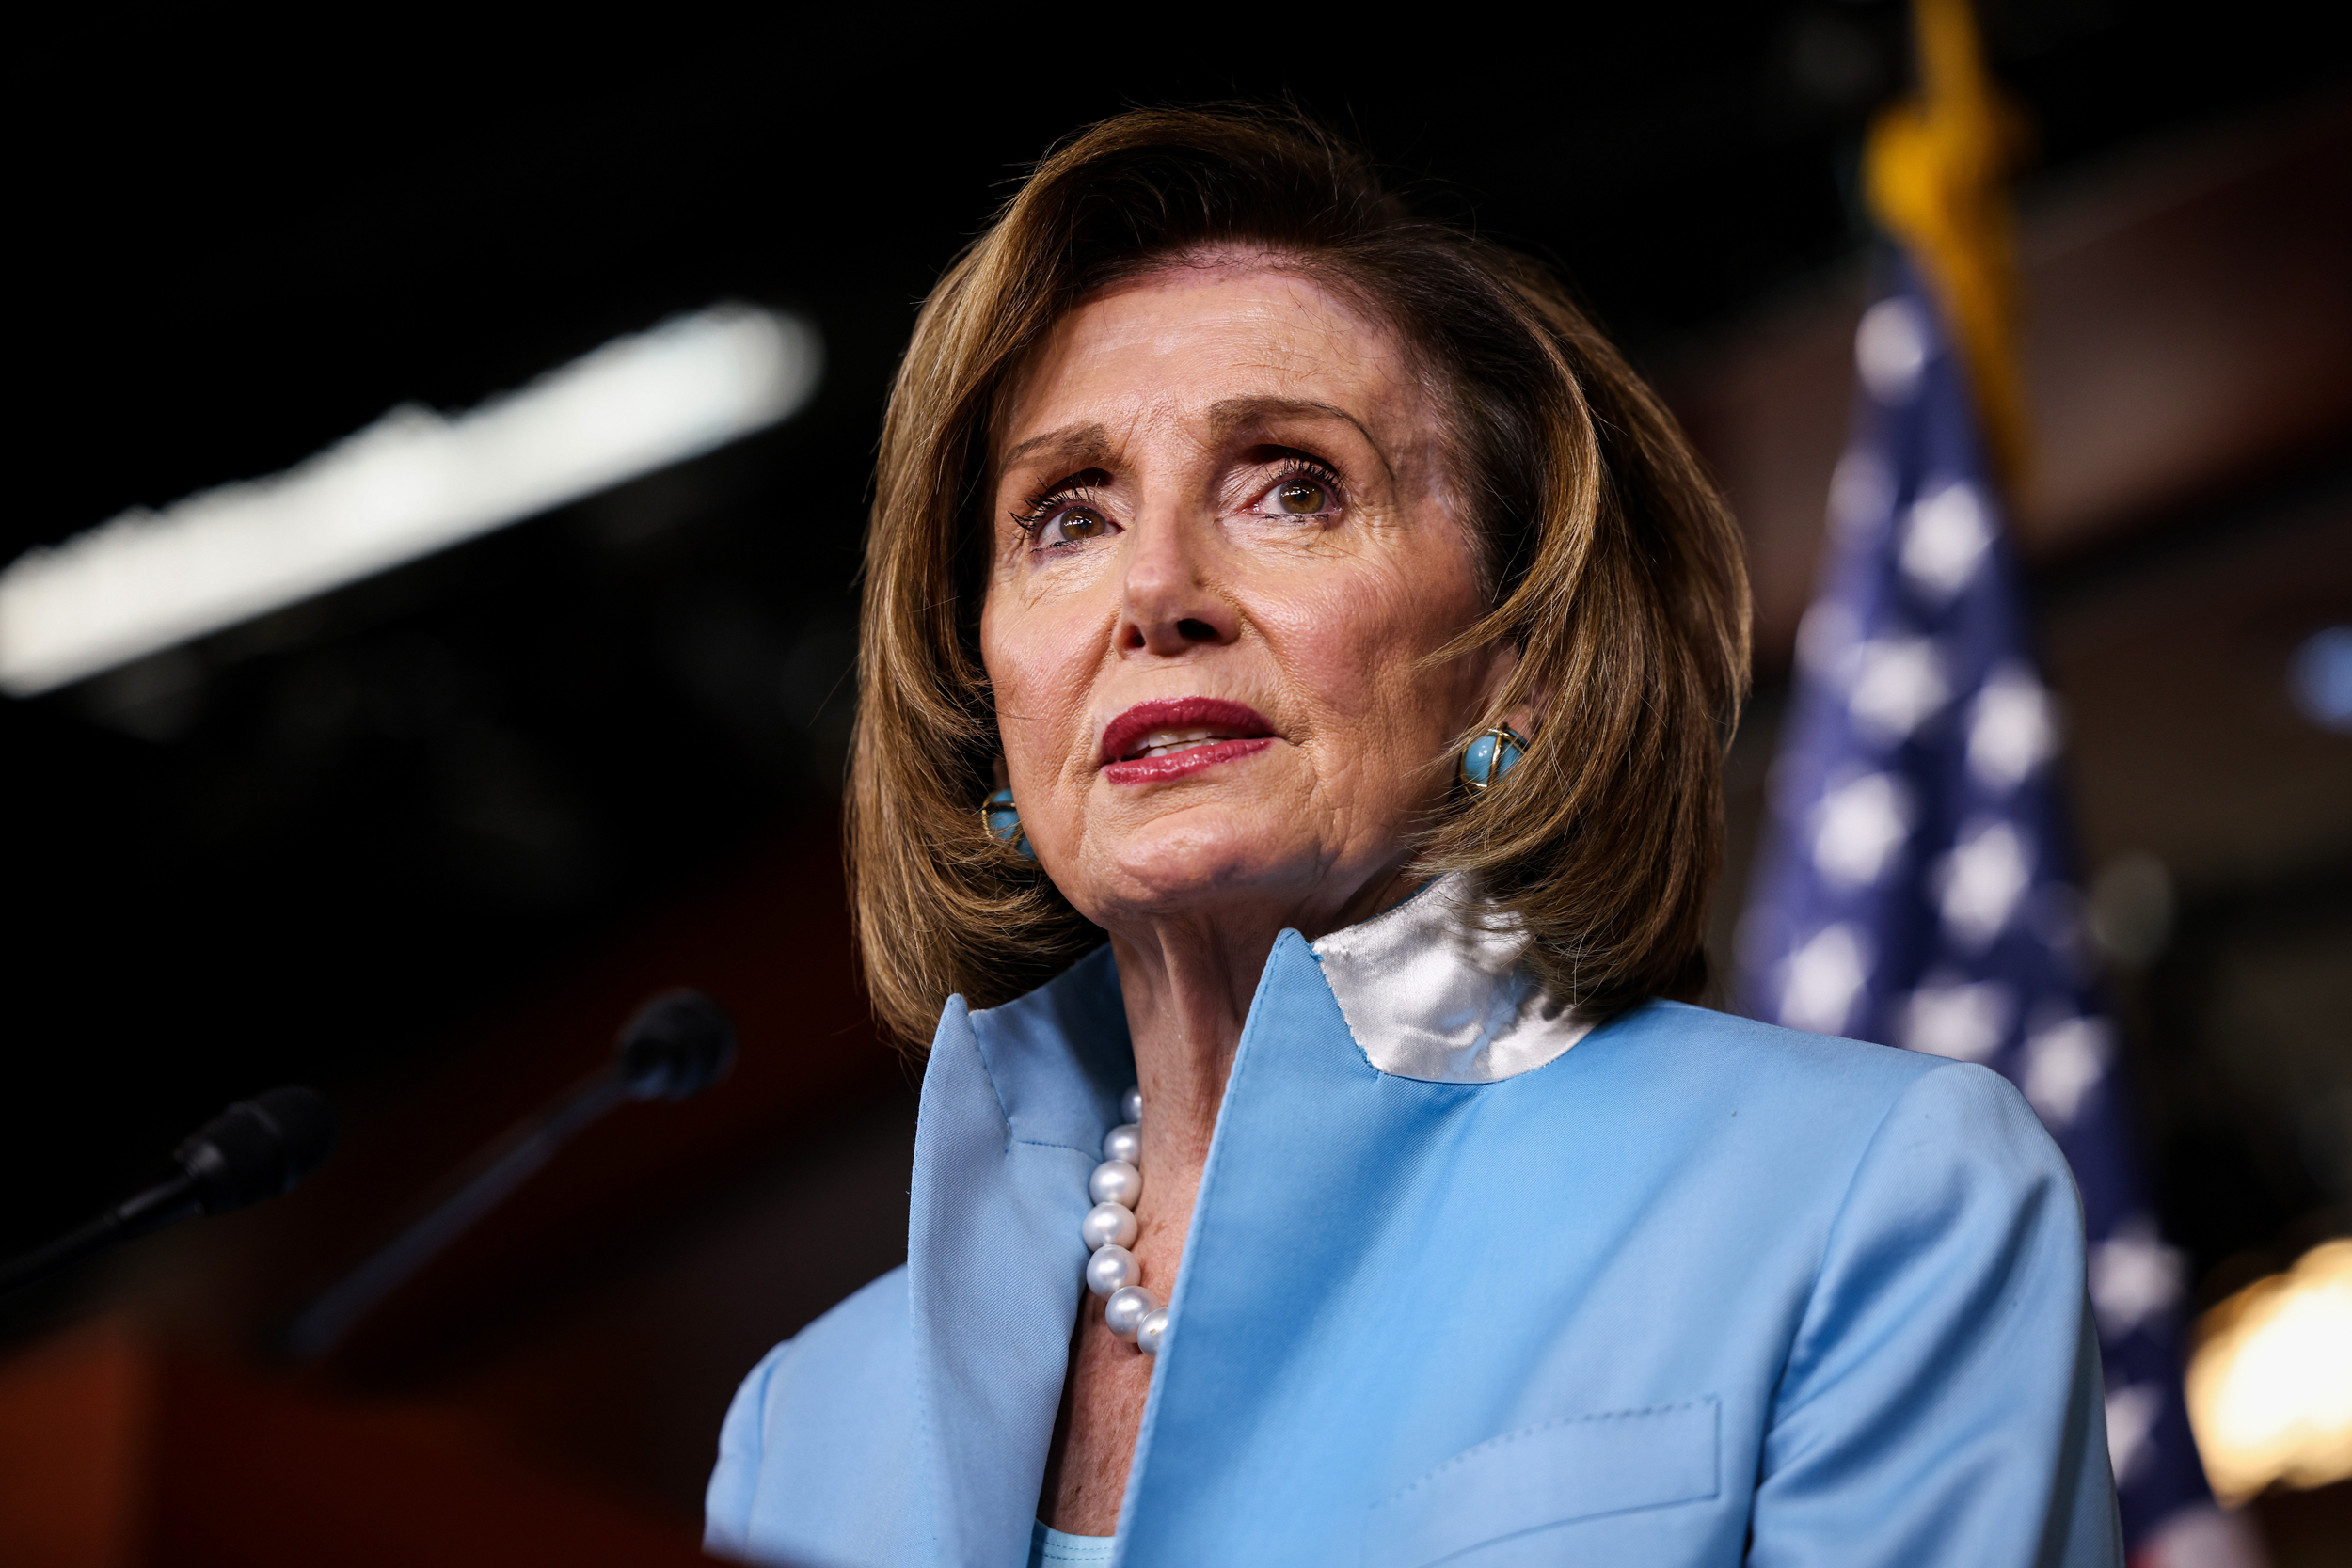 Pelosi faces infrastructure squeeze between moderates and progressives